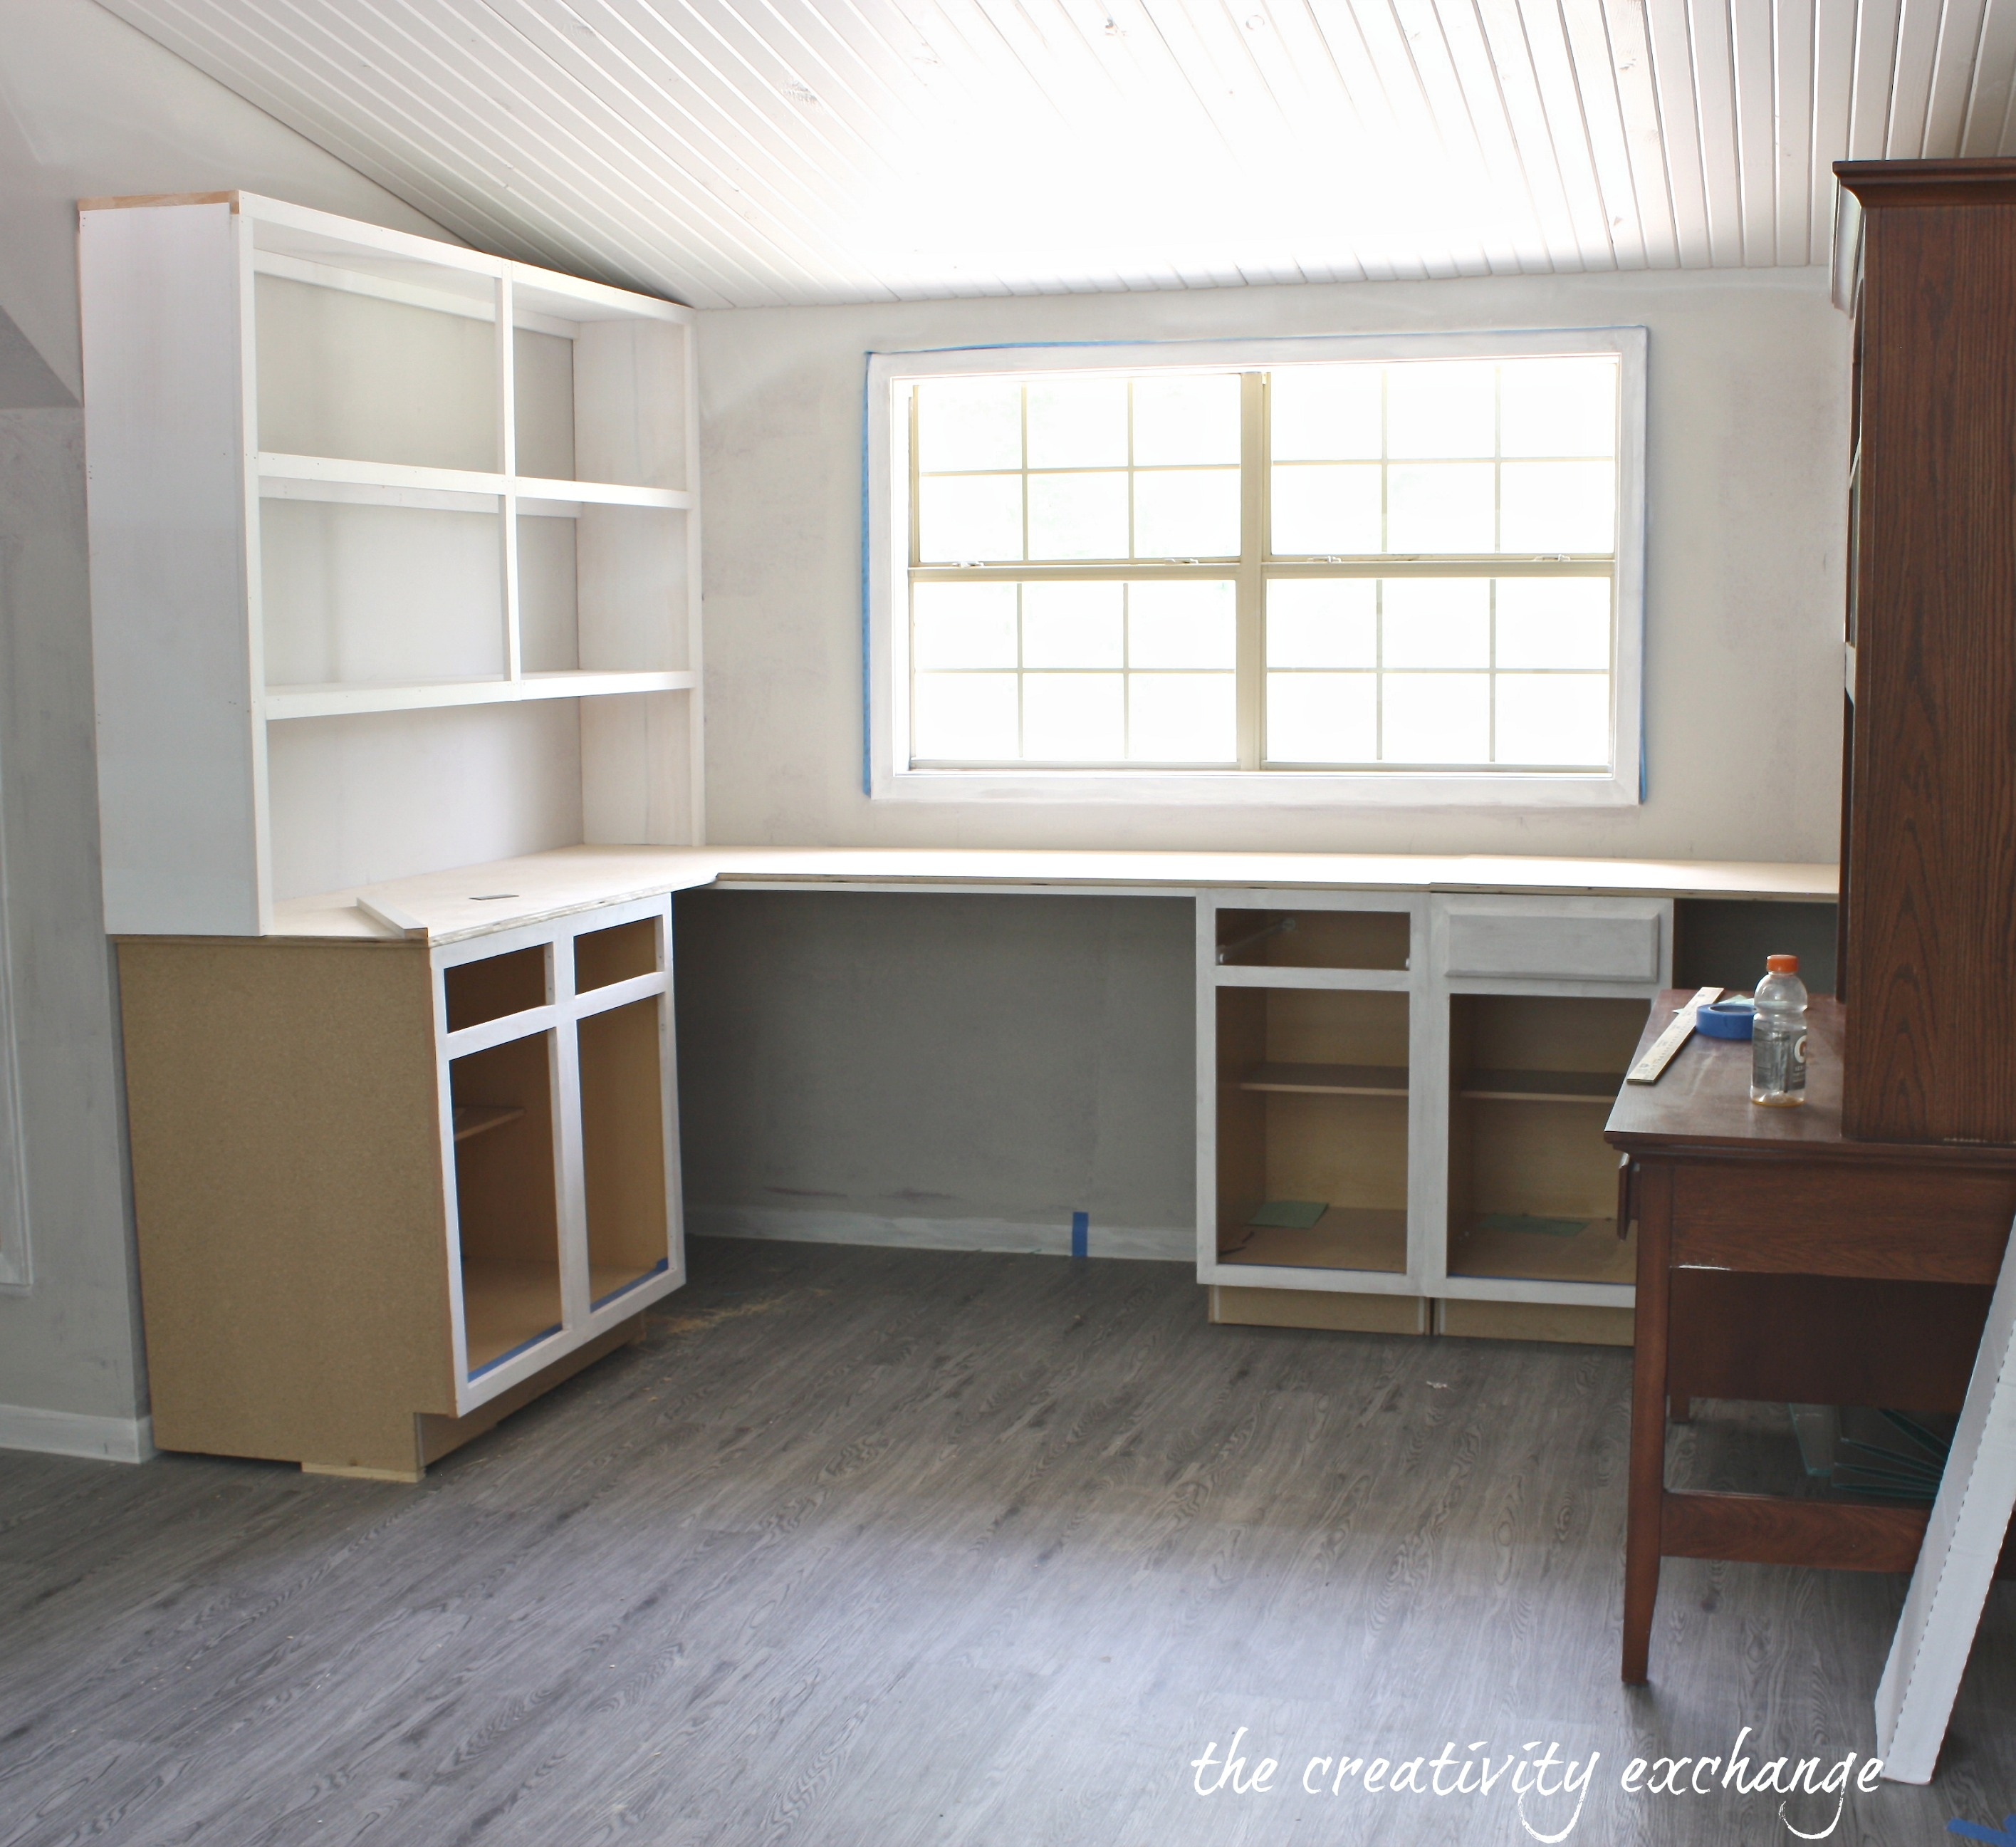 Create Built In Shelving And Cabinets On A Tight Budget Throughout Built In Cupboard Shelving (#7 of 15)